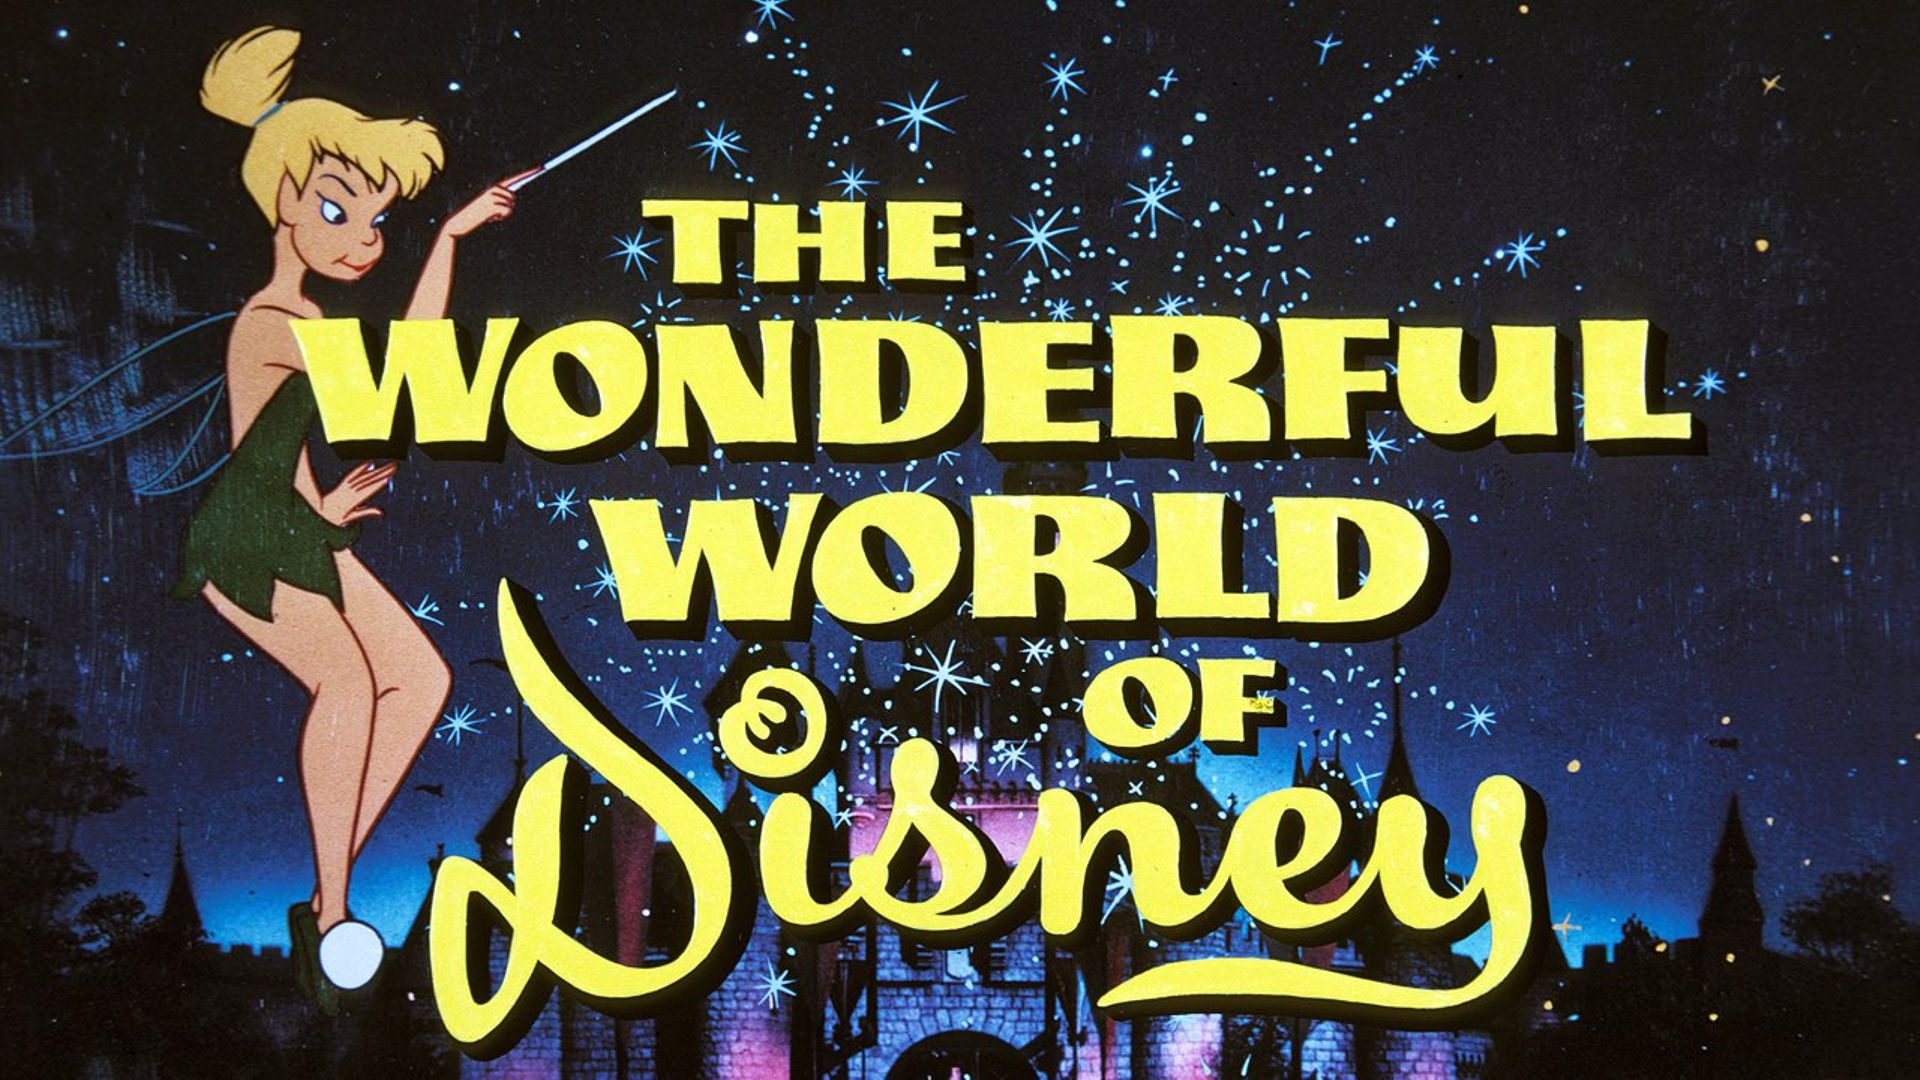 Season 25, Episode 01 NBC Salutes the 25th Anniversary of The Wonderful World of Disney